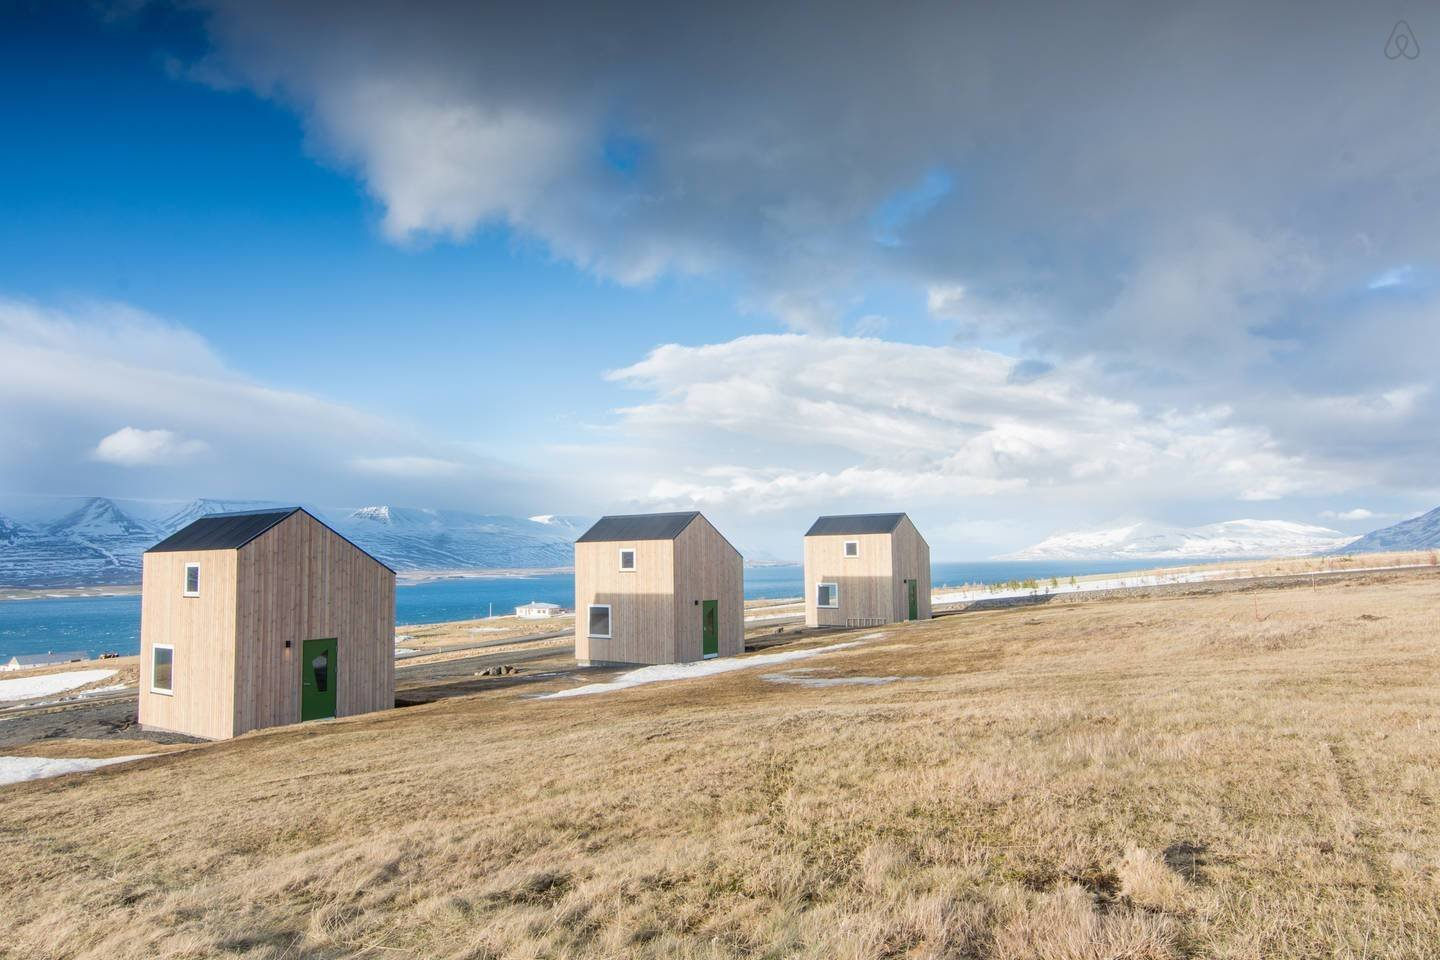 10 Incredible Rentals For Your Dream Trip to Iceland - Photo 18 of 29 -